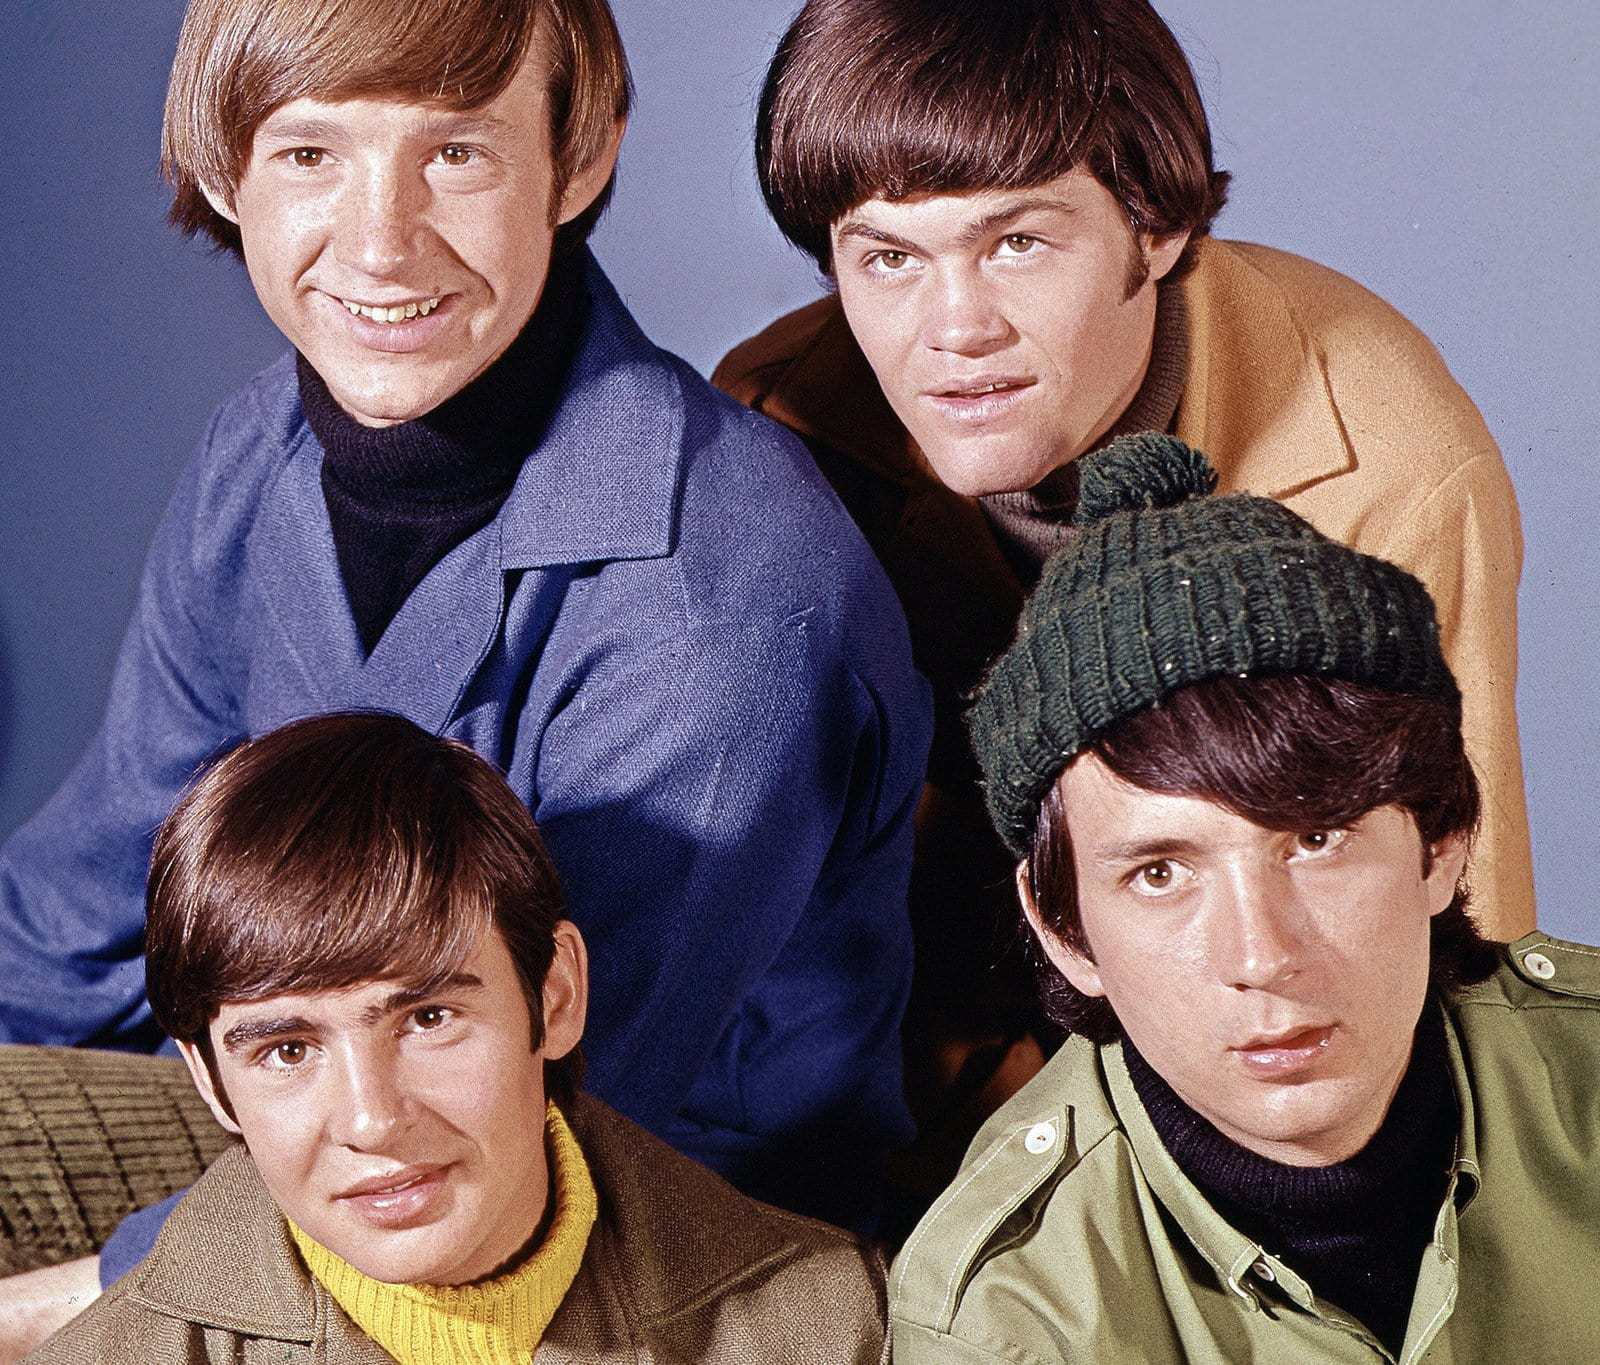 The Monkees are coming: Singers-spoofers offer crazy fun (1966)